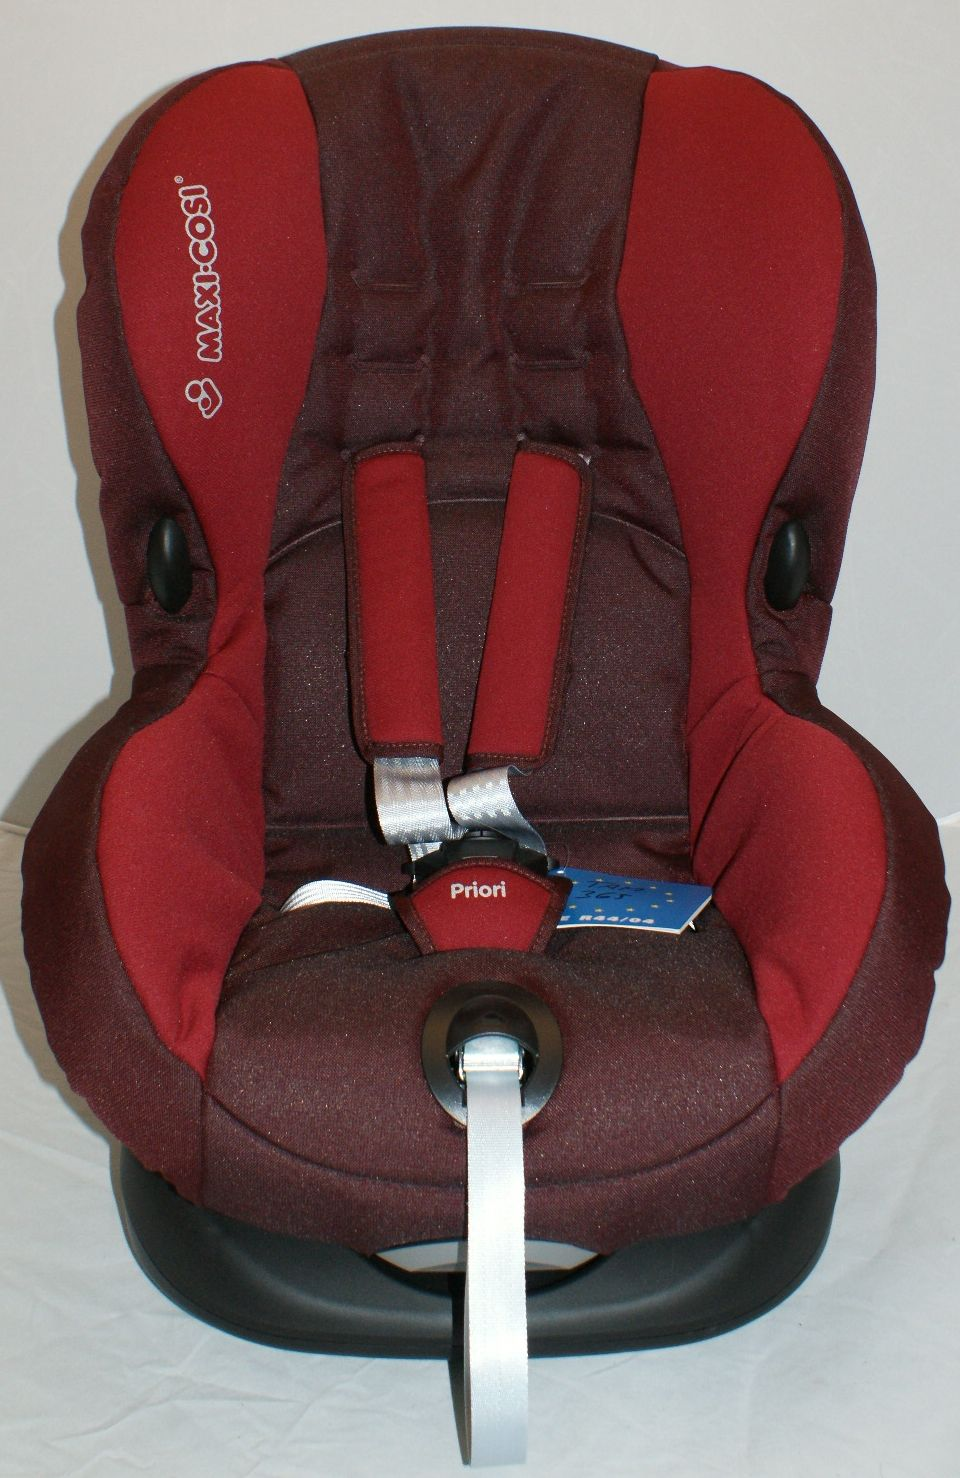 maxi cosi priori sps kindersitz autositz 9 18 kg rot carmine ebay. Black Bedroom Furniture Sets. Home Design Ideas